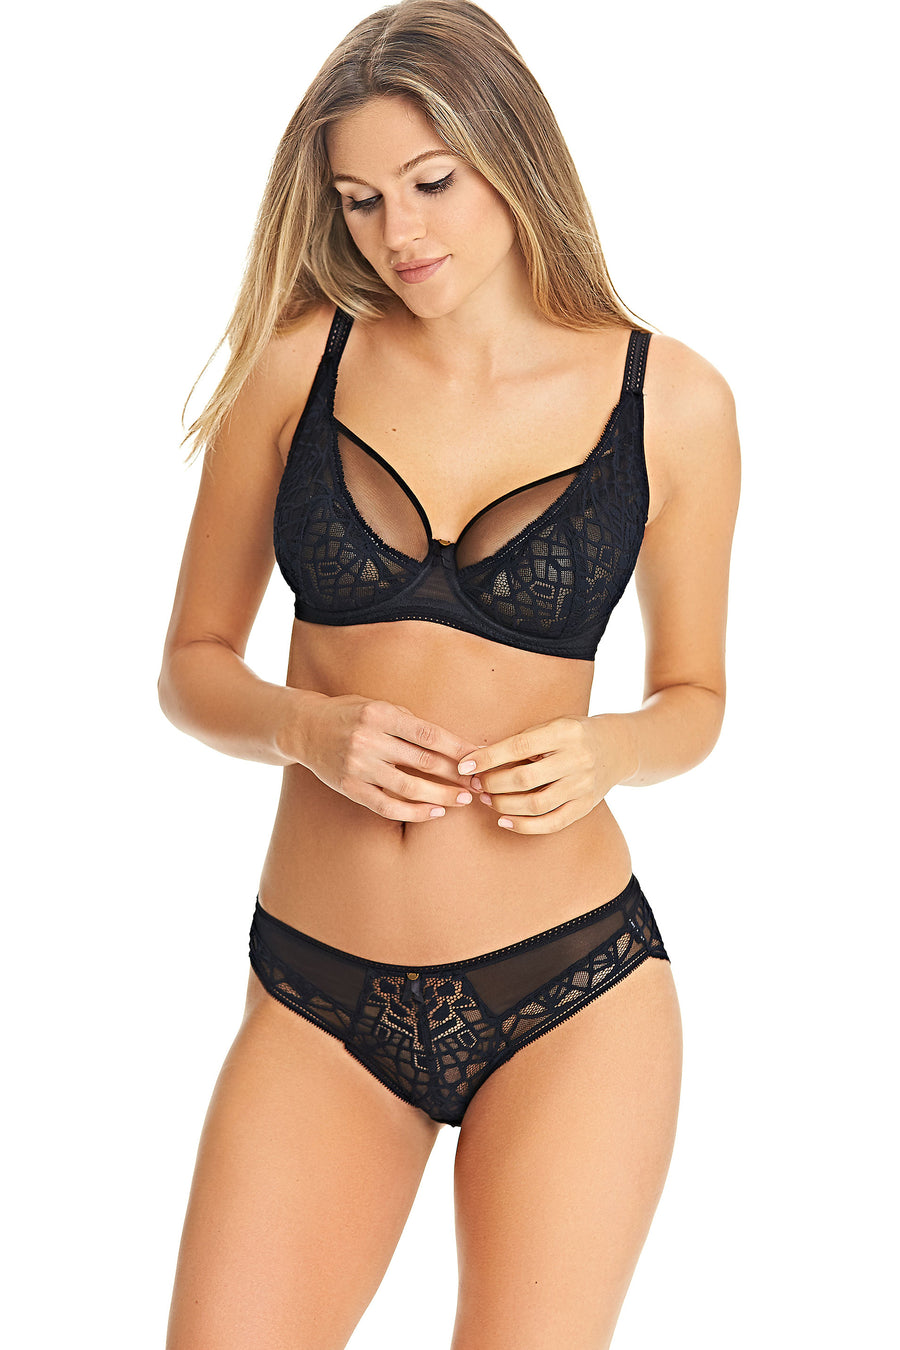 Soiree Lace Black High Apex Bra